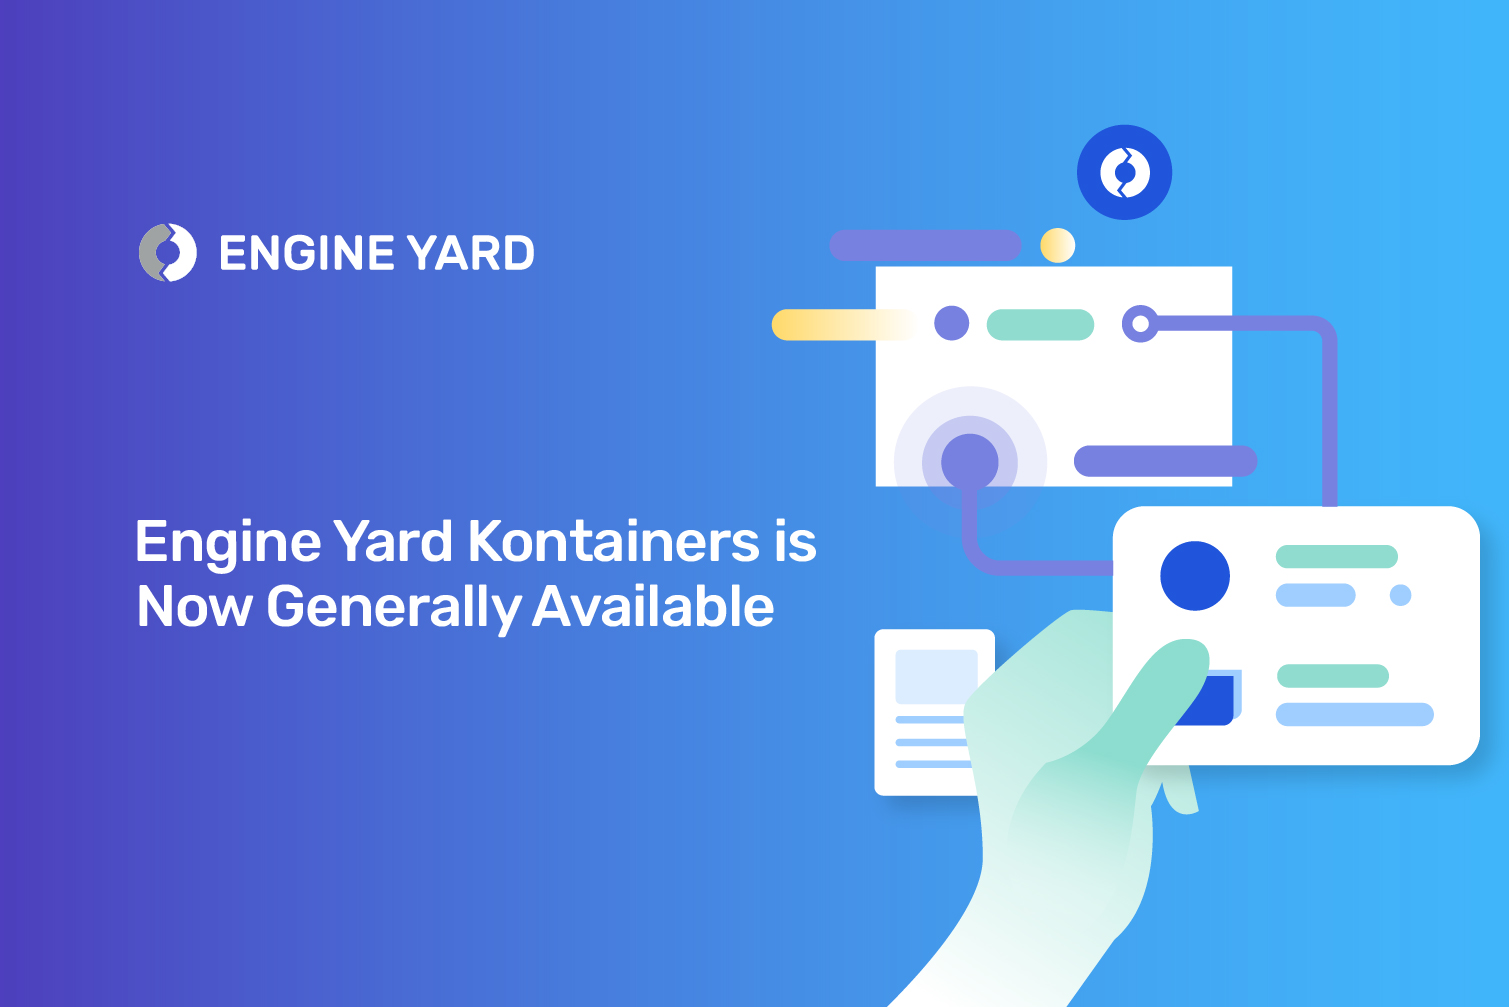 Engine Yard Kontainers Is Now Generally Available